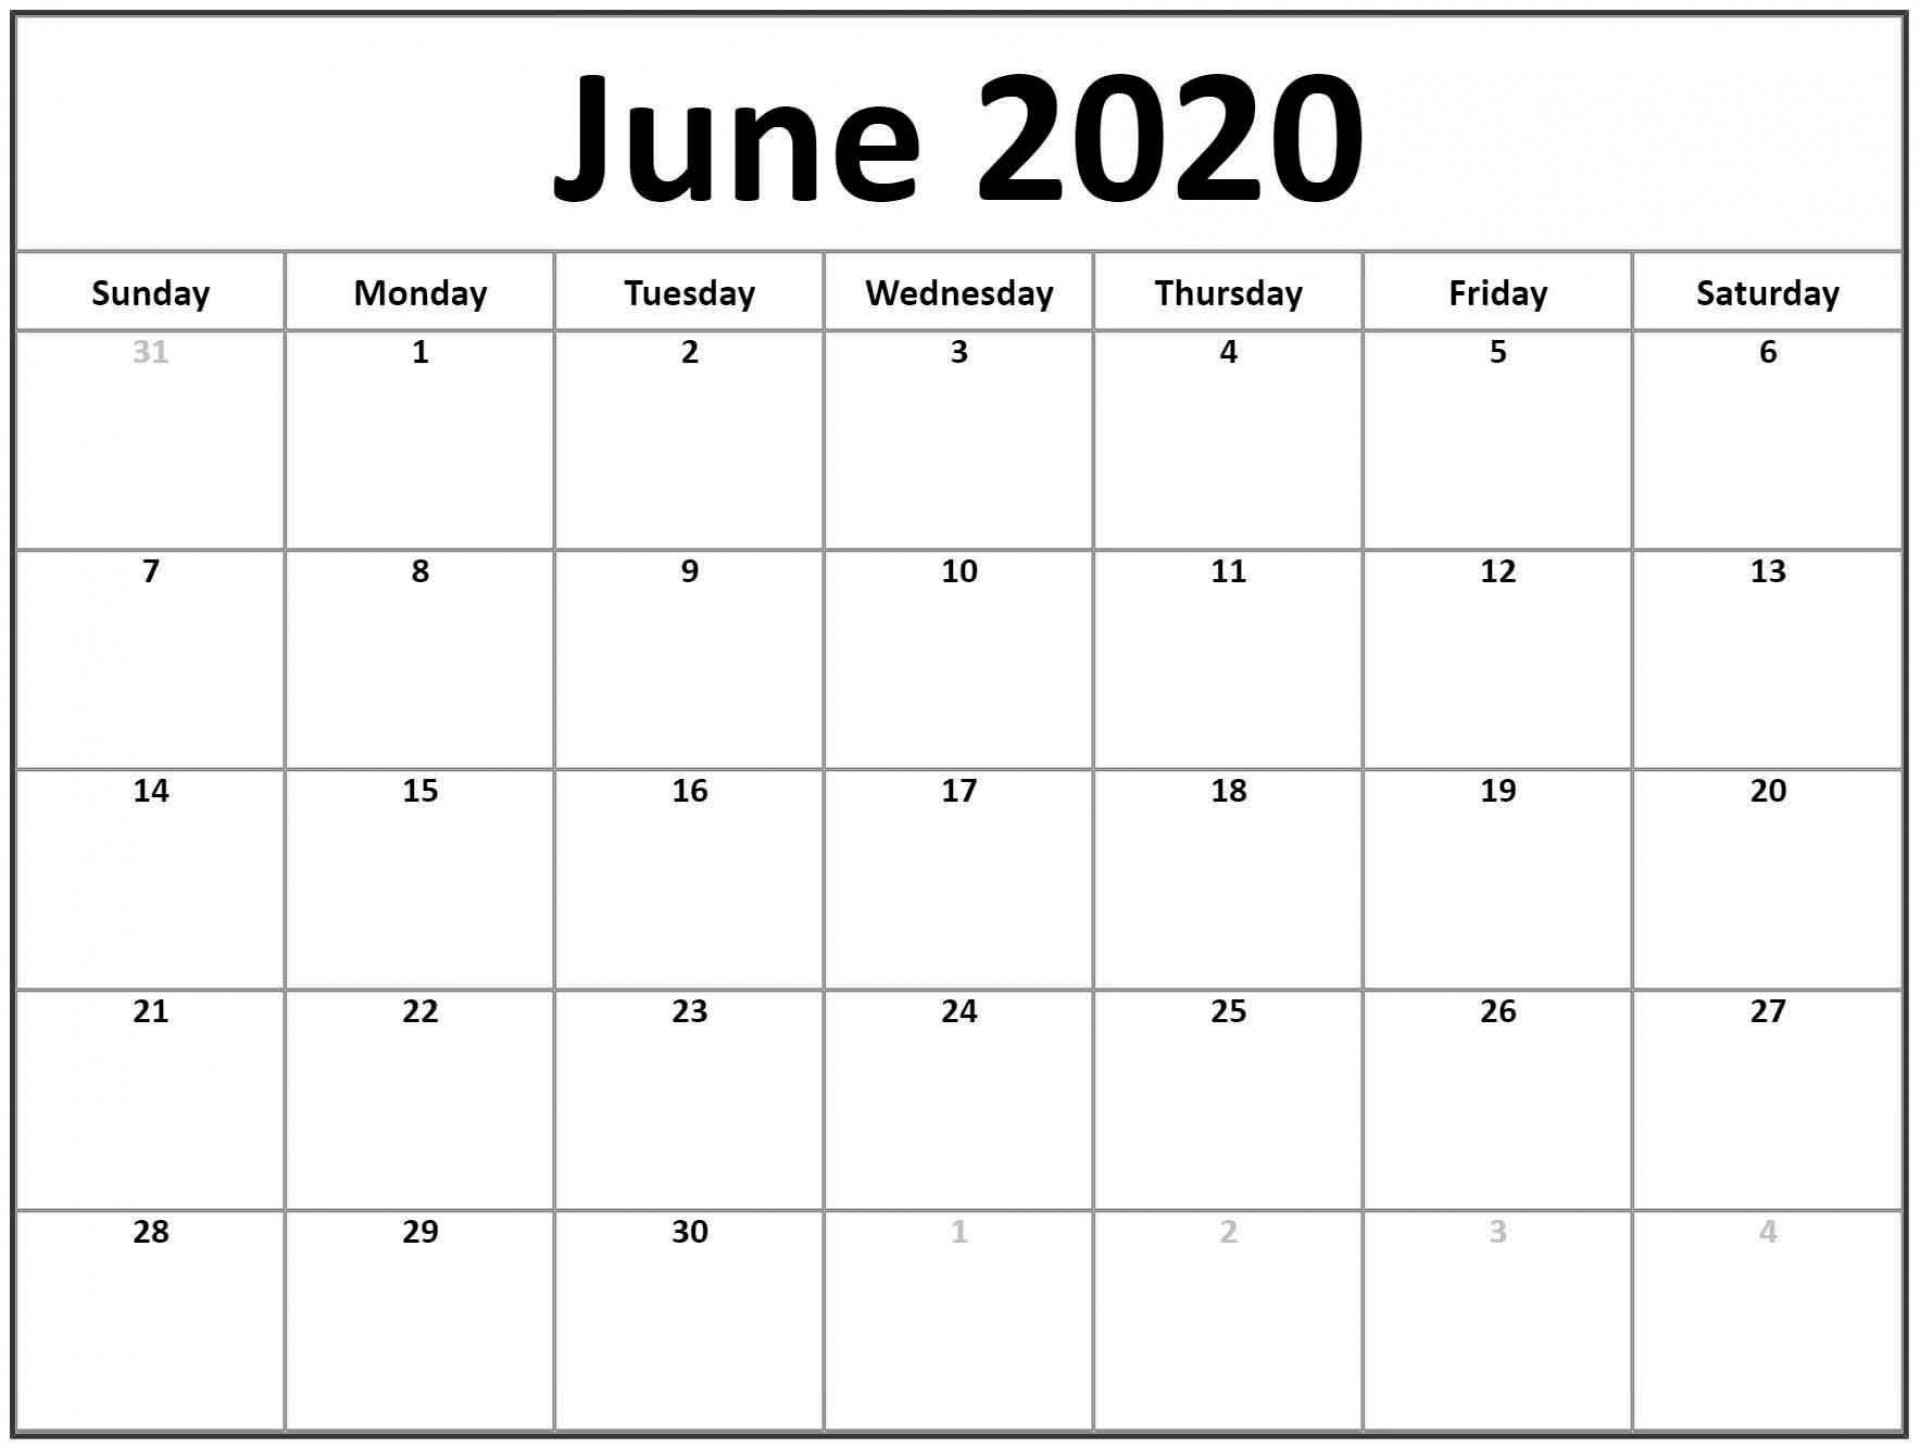 006 Fearsome June 2020 Monthly Calendar Template Example 1920